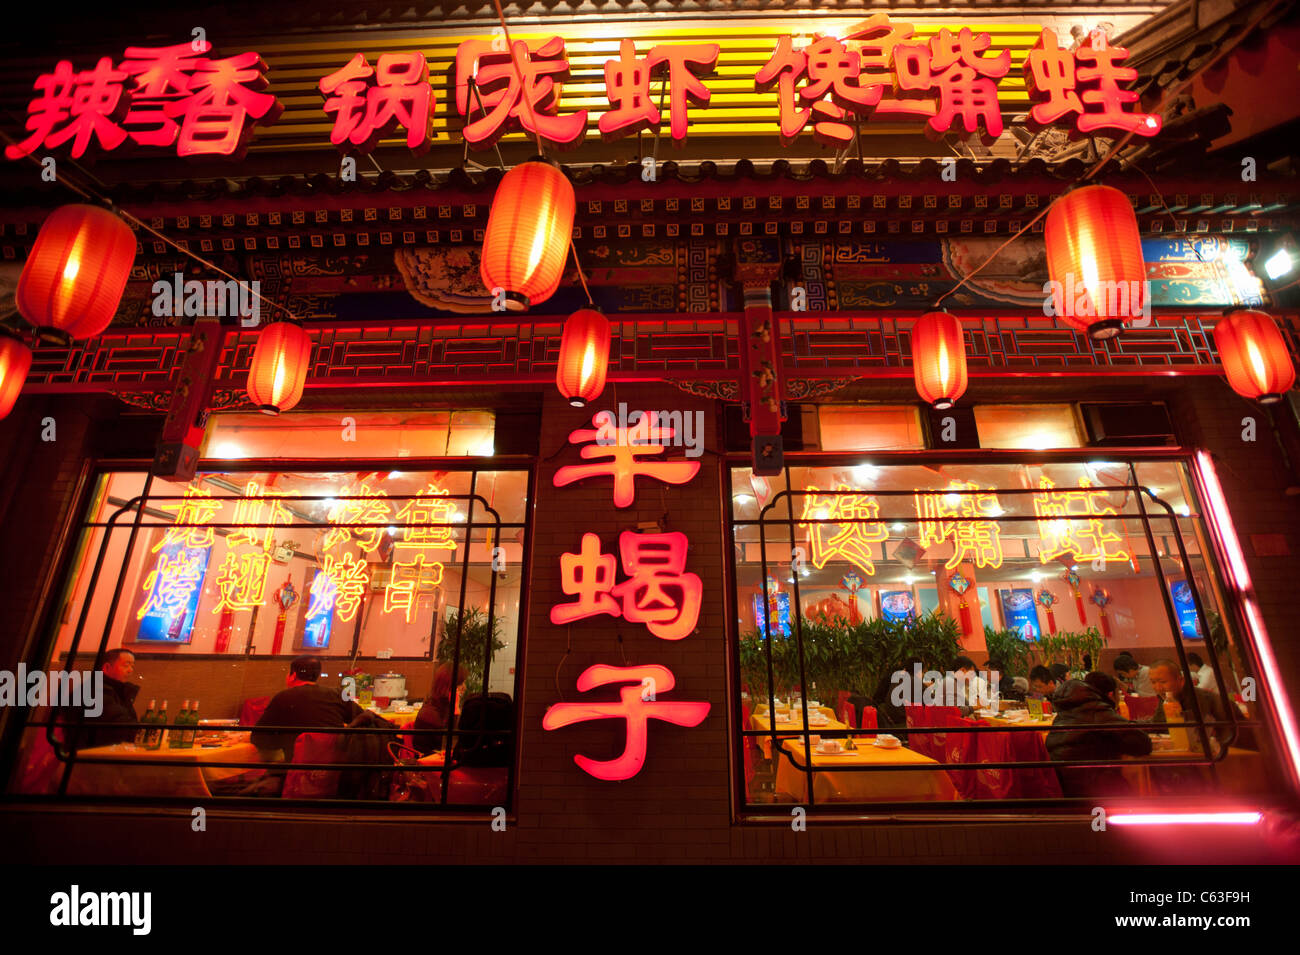 Neon signs and red lanterns at night  illuminating menu at Chinese restaurant in Beijing China - Stock Image